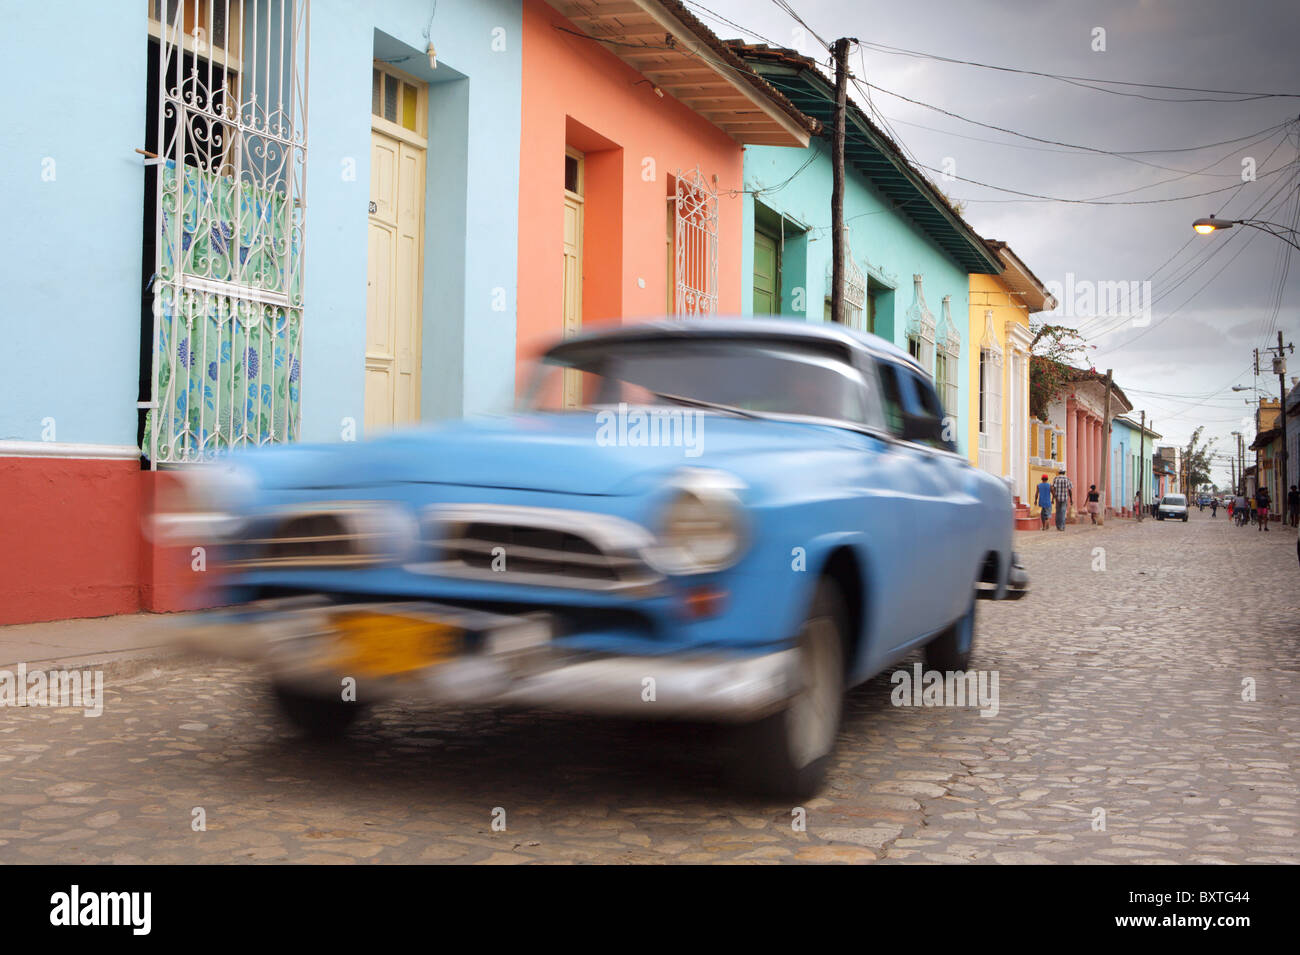 TRINIDAD : VOITURE DE COLLECTION SUR LA RUE COLONIALE colorée Photo Stock